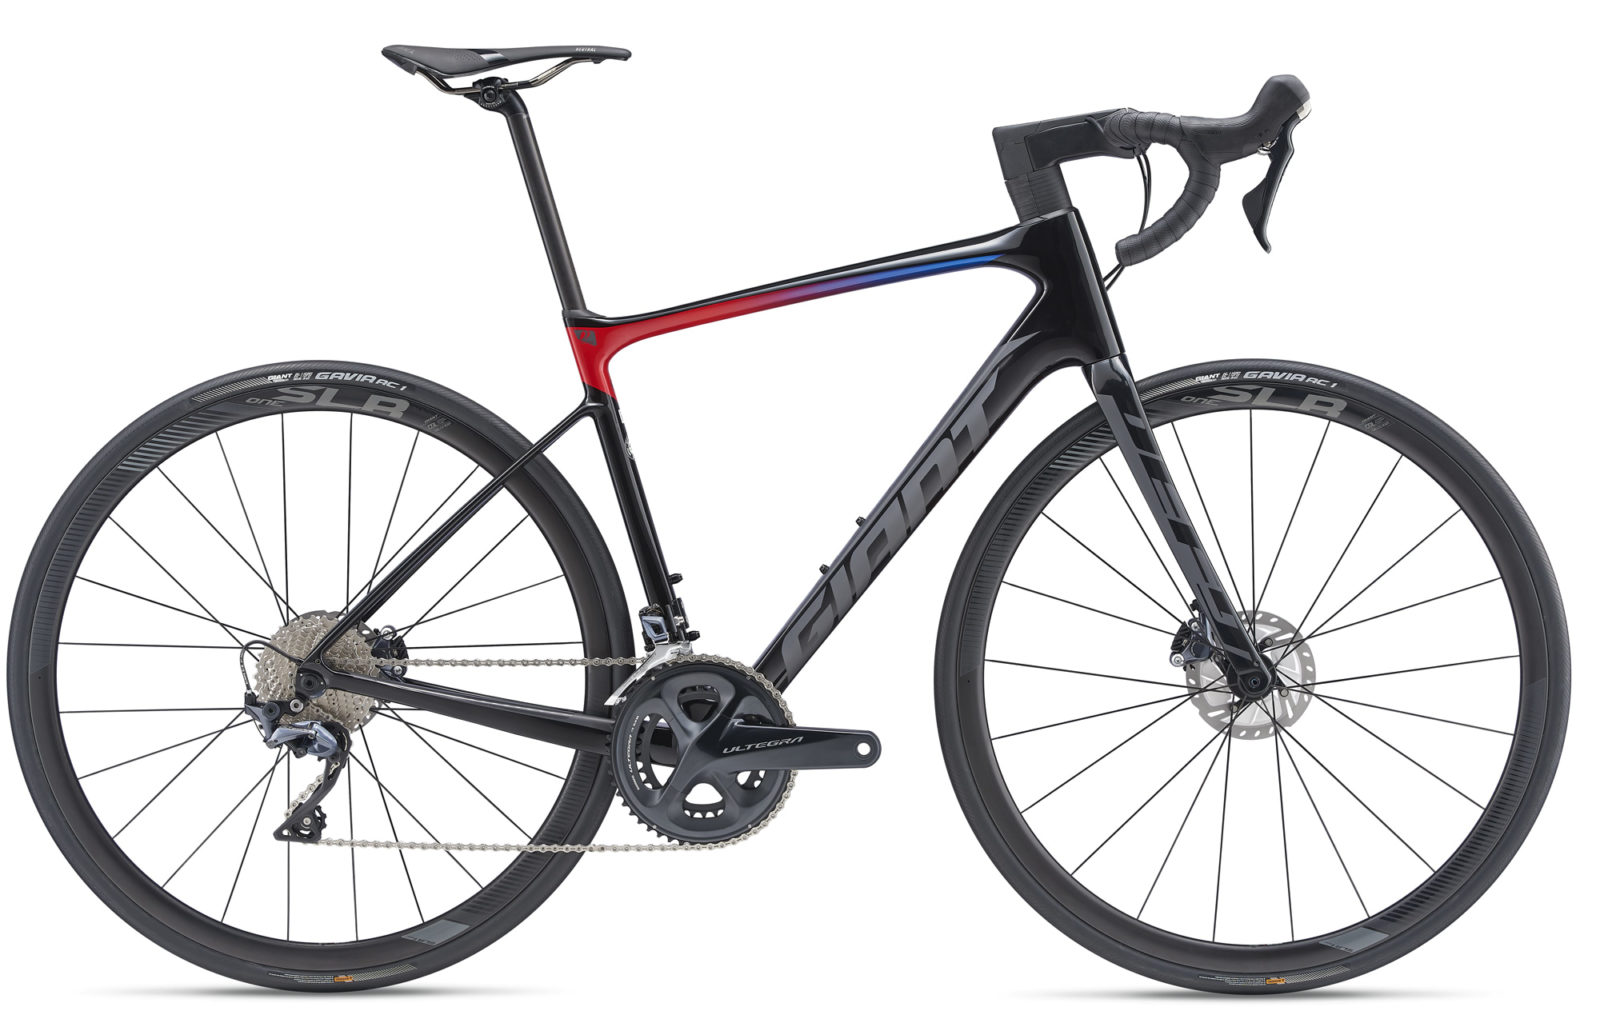 Giant Rennrad Defy Advanced Pro 1 2019